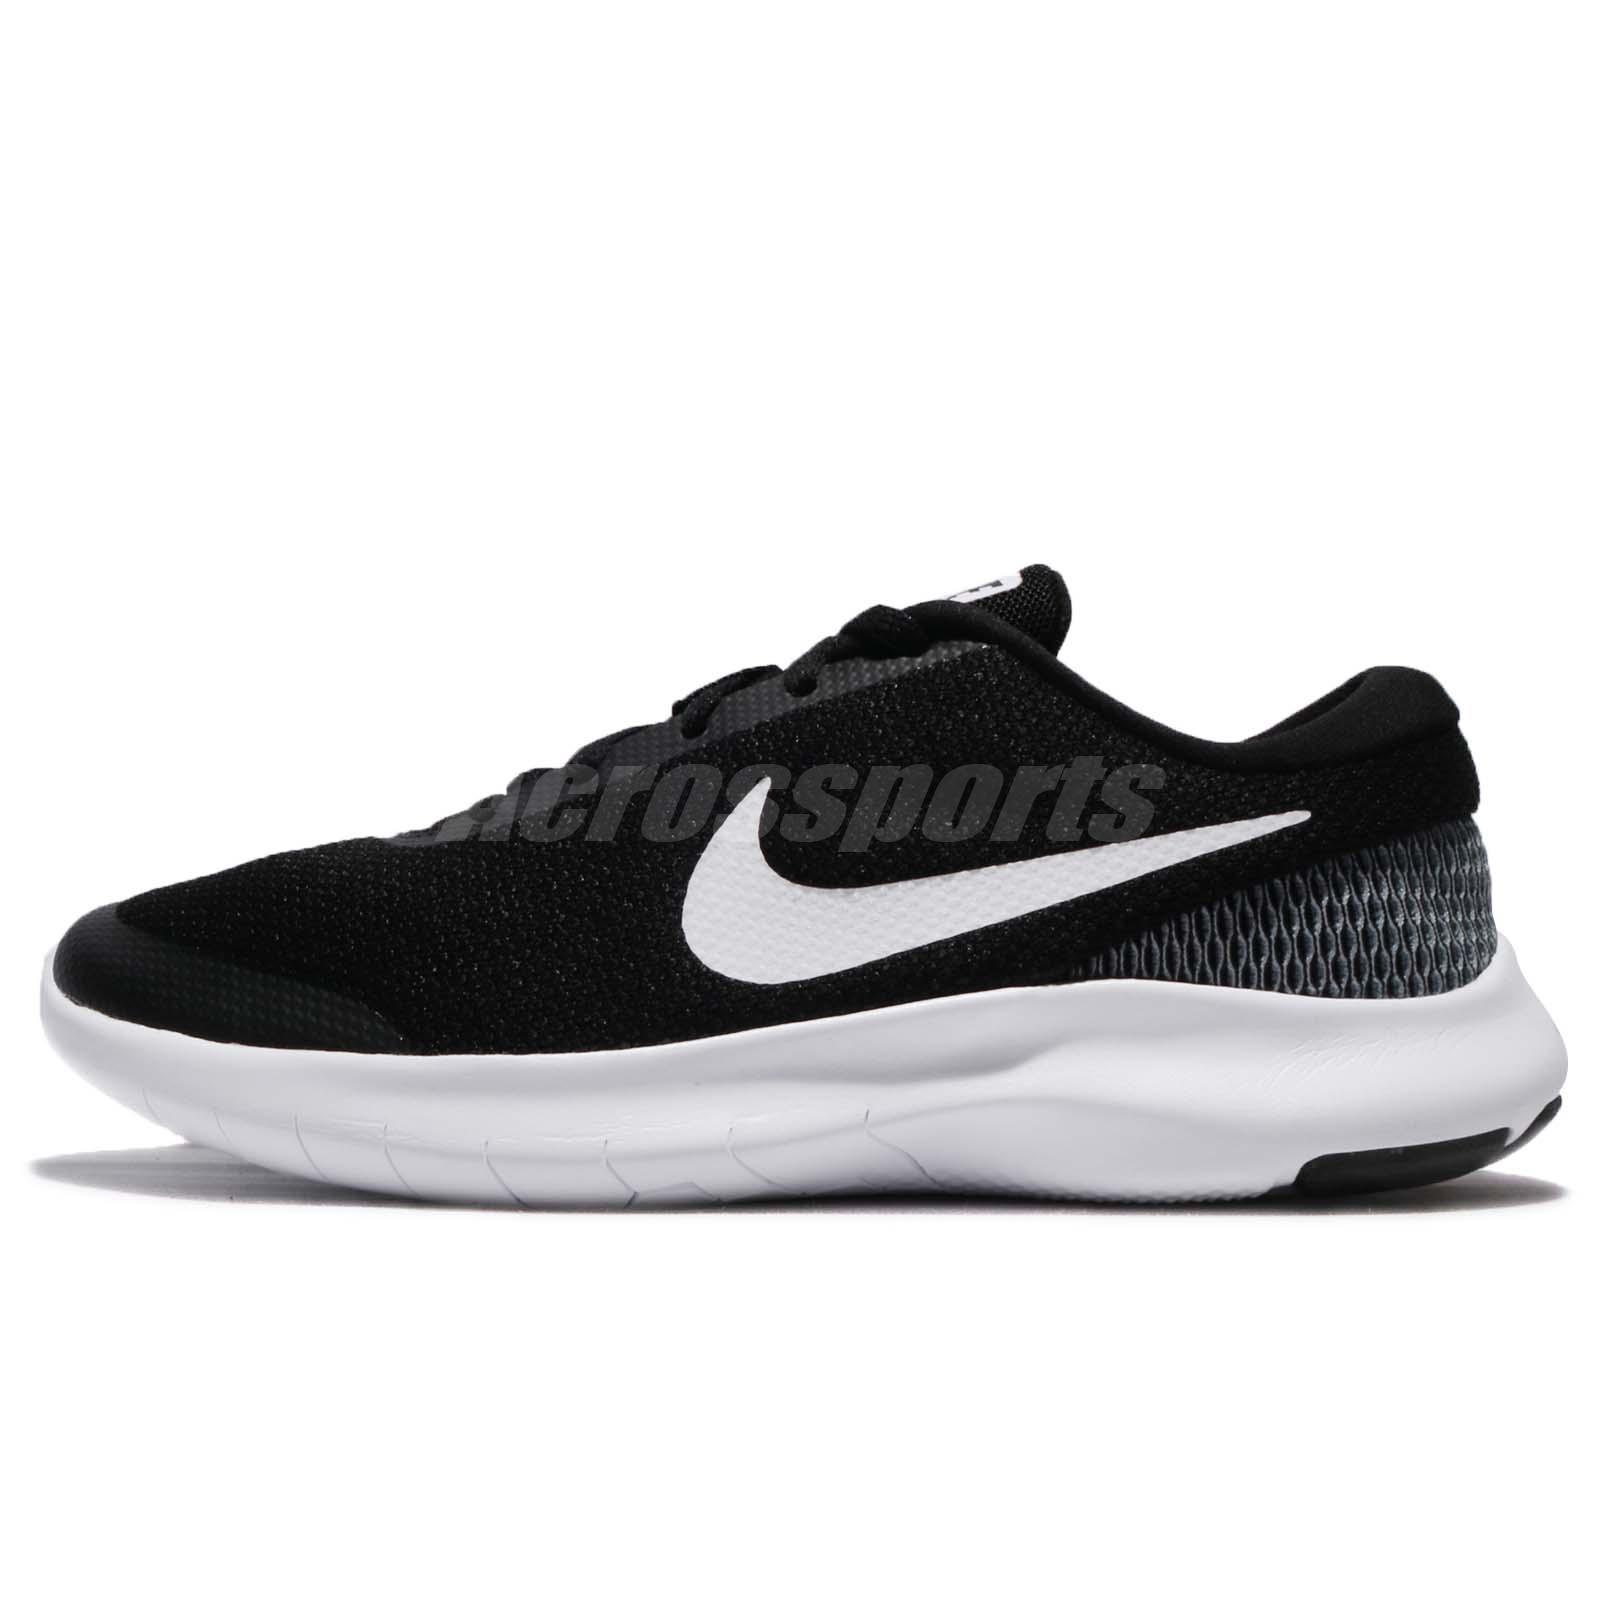 25bd52941237 Wmns Nike Flex Experience RN 7 VII Black White Women Running Shoes 908996 -001